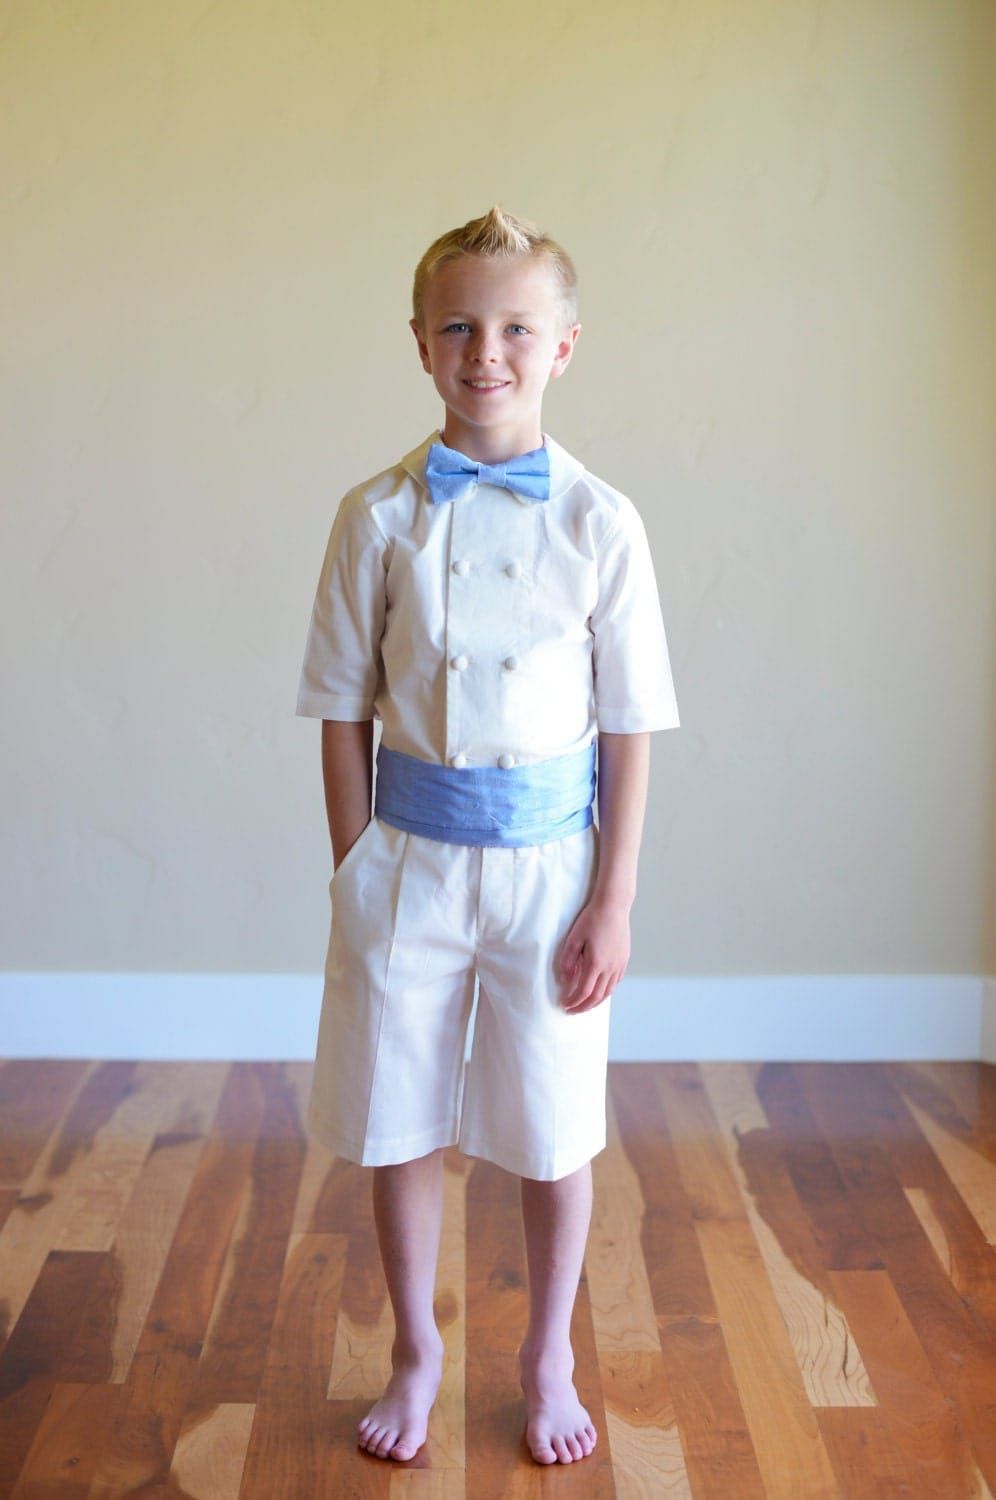 White Boys' Shorts and Boys' Cargo Shorts at Macy's come in a variety of styles and sizes. Shop White Boys' Shorts at Macy's and find the latest styles for your little one today.